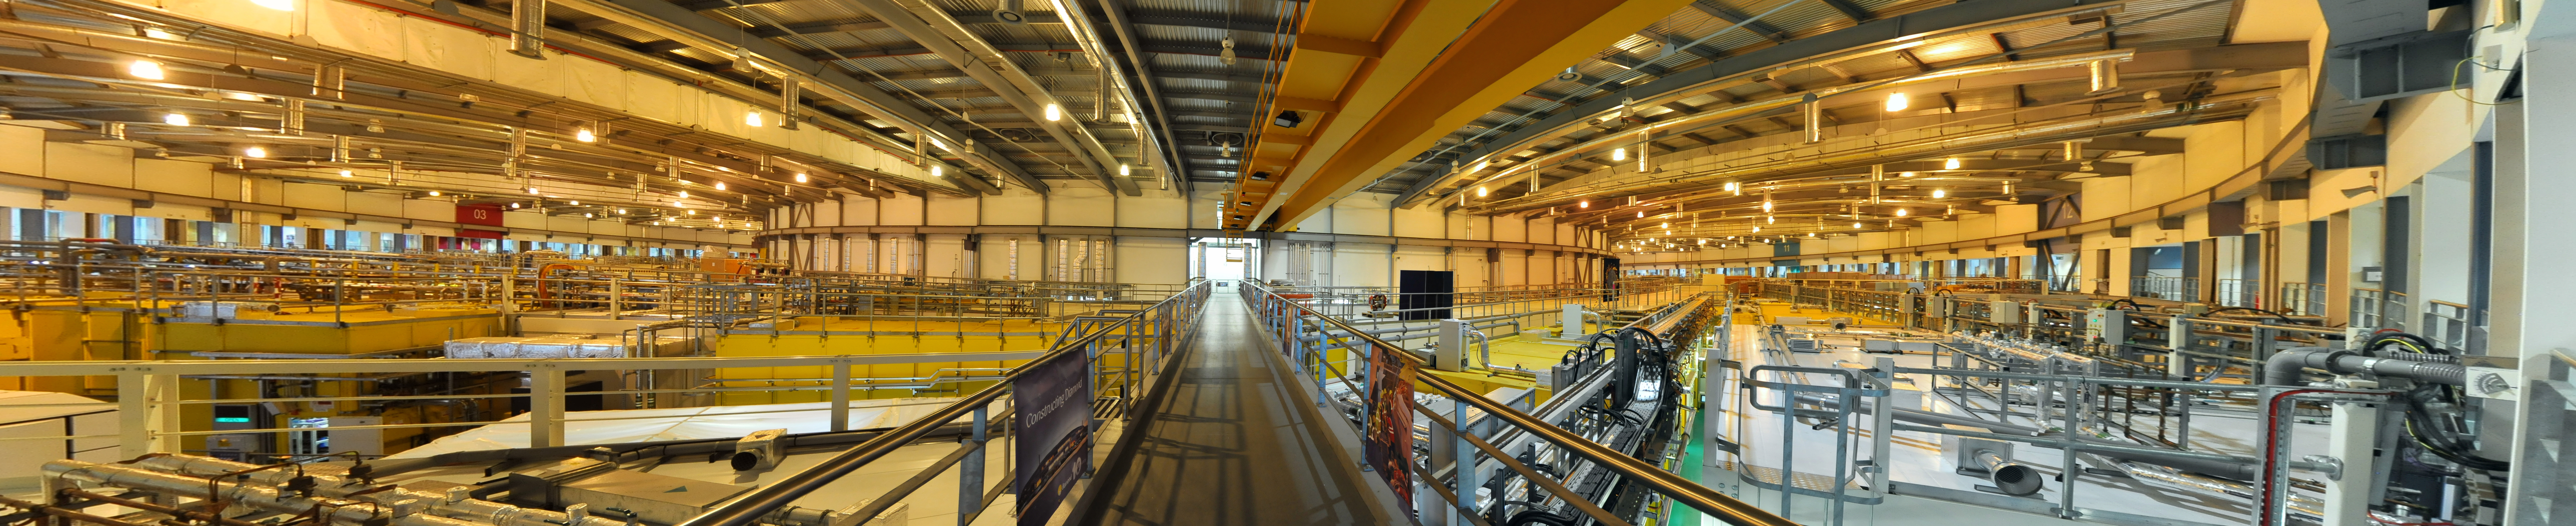 Experimental Hall Panorama. Copyright of Diamond Light Source Ltd.